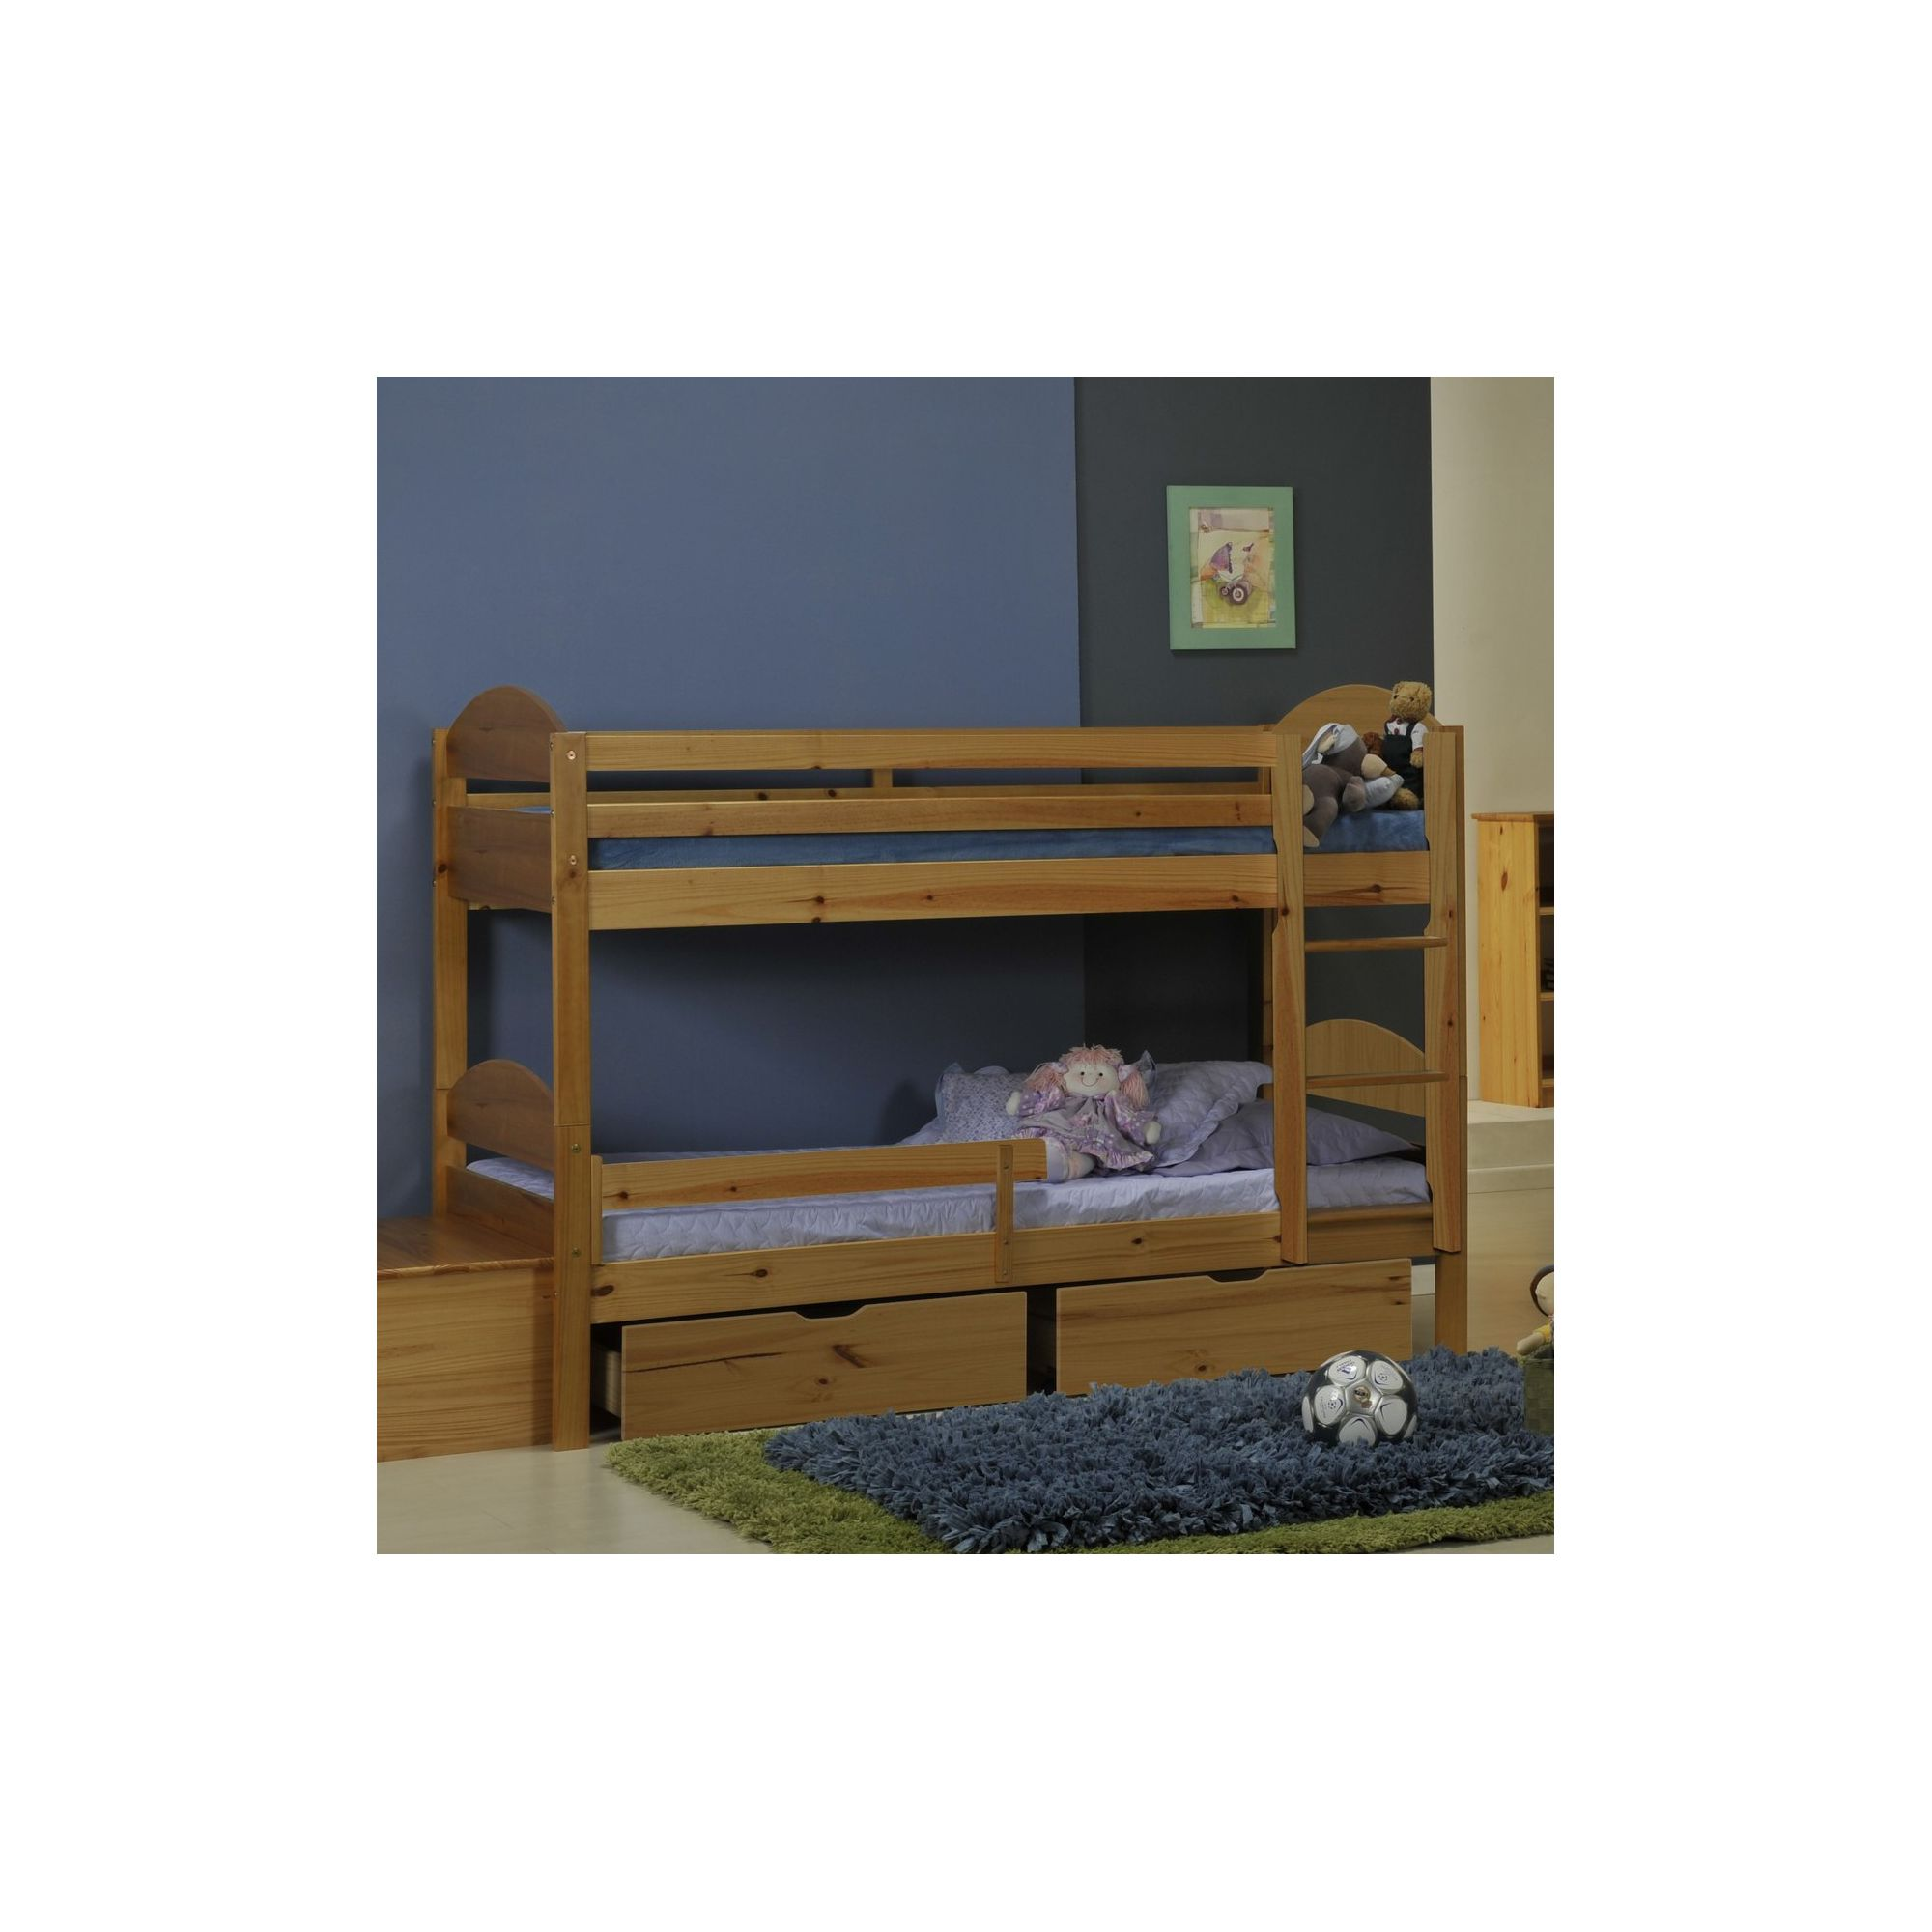 Verona Maximus Bunk Bed - Antique at Tesco Direct